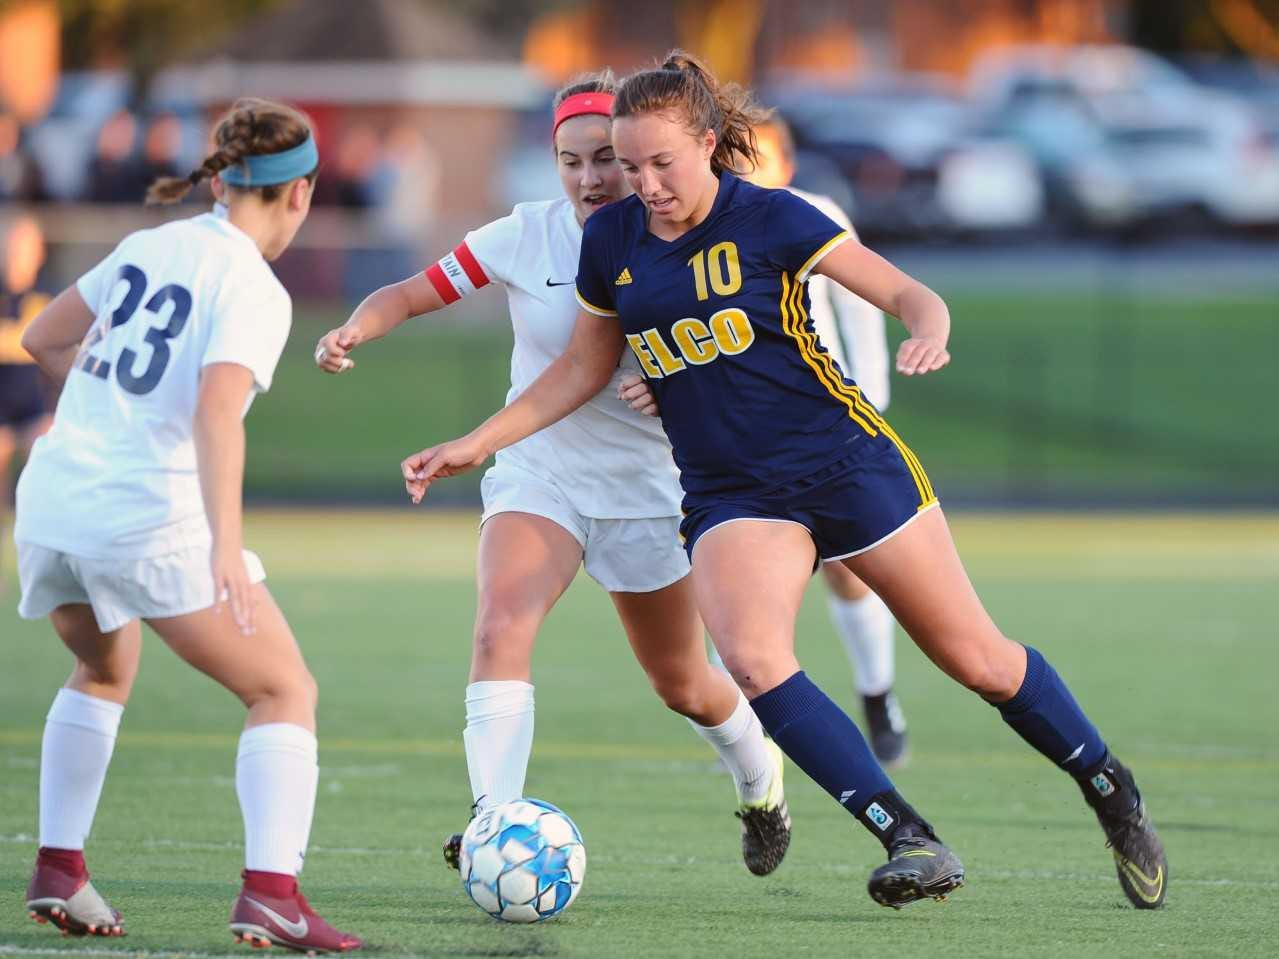 Ryelle Shuey (10) of Elco tries to go between CV's Megan Slingluff (23) and Reese Lapp (17) during the first half of play.